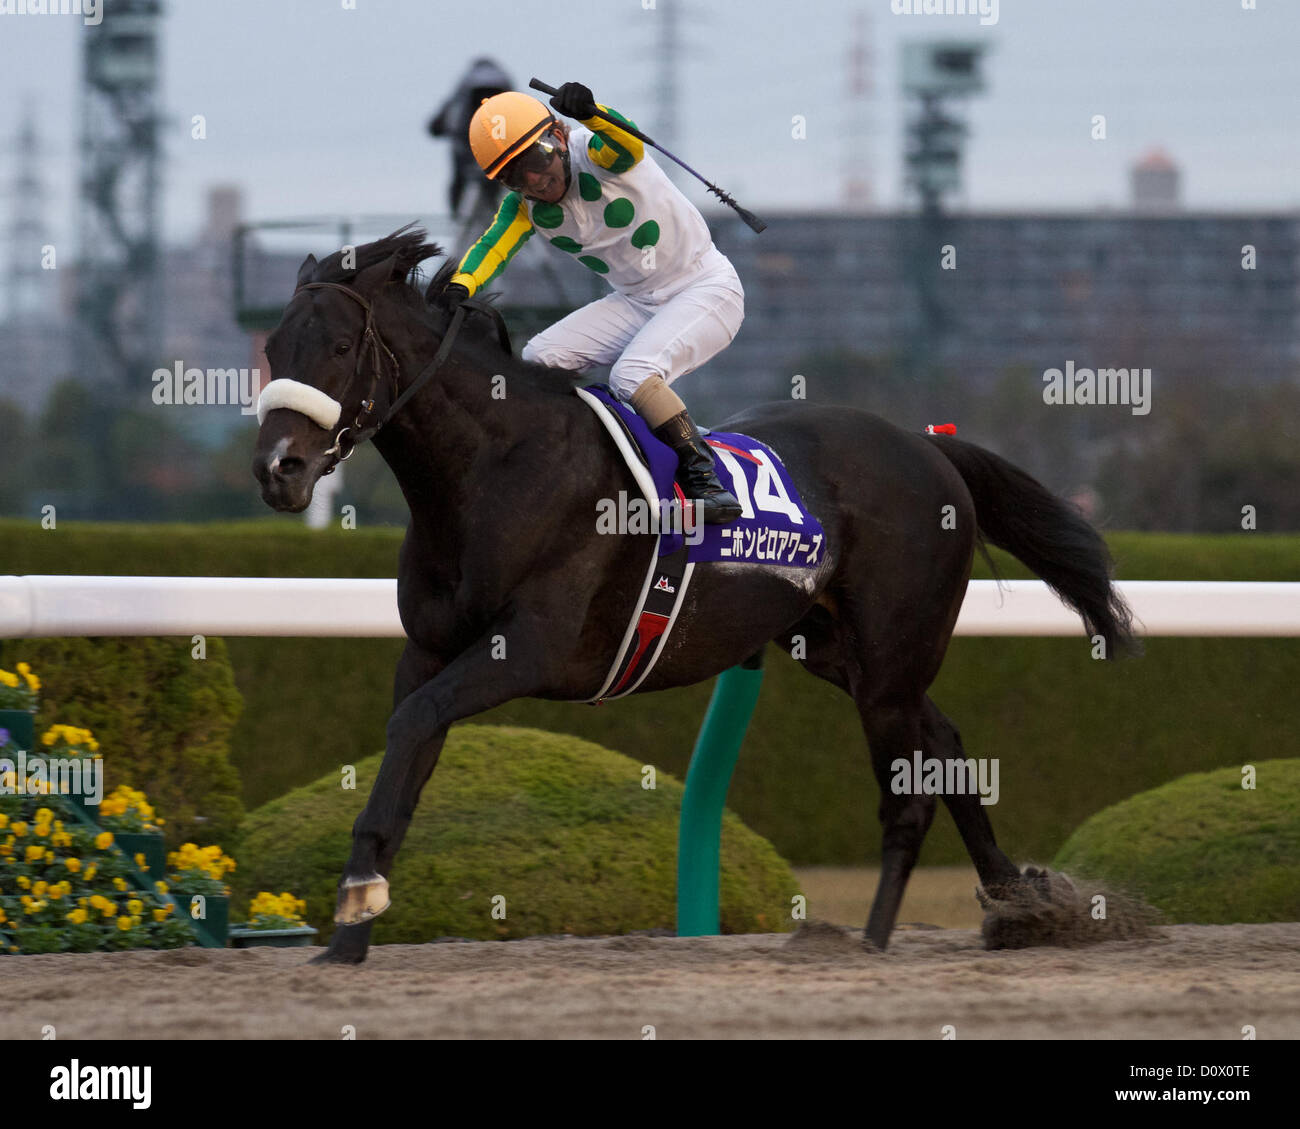 Dec. 2, 2012 - Takarazuka, Hyogo, U.S. - Nihonpiro Ours beats a field of G1 winners in the 13th Japan Cup Dirt at - Stock Image